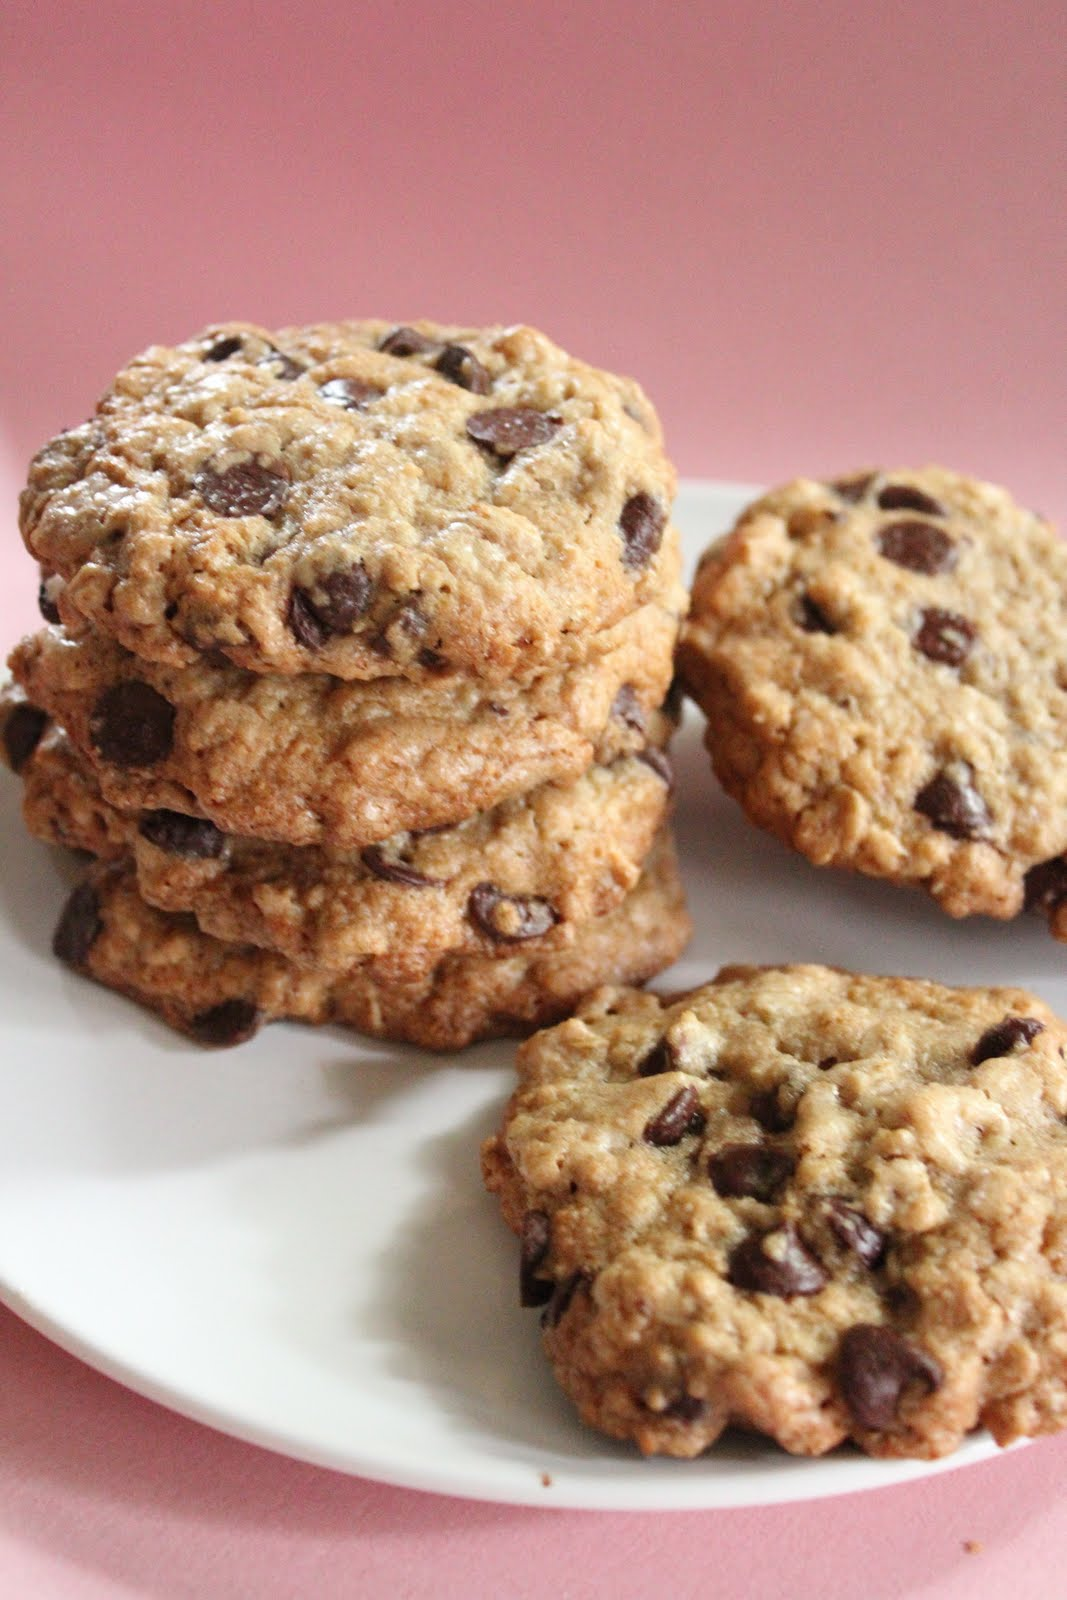 ... Ultimate healthier oatmeal and chocolate chip cookies are awesome